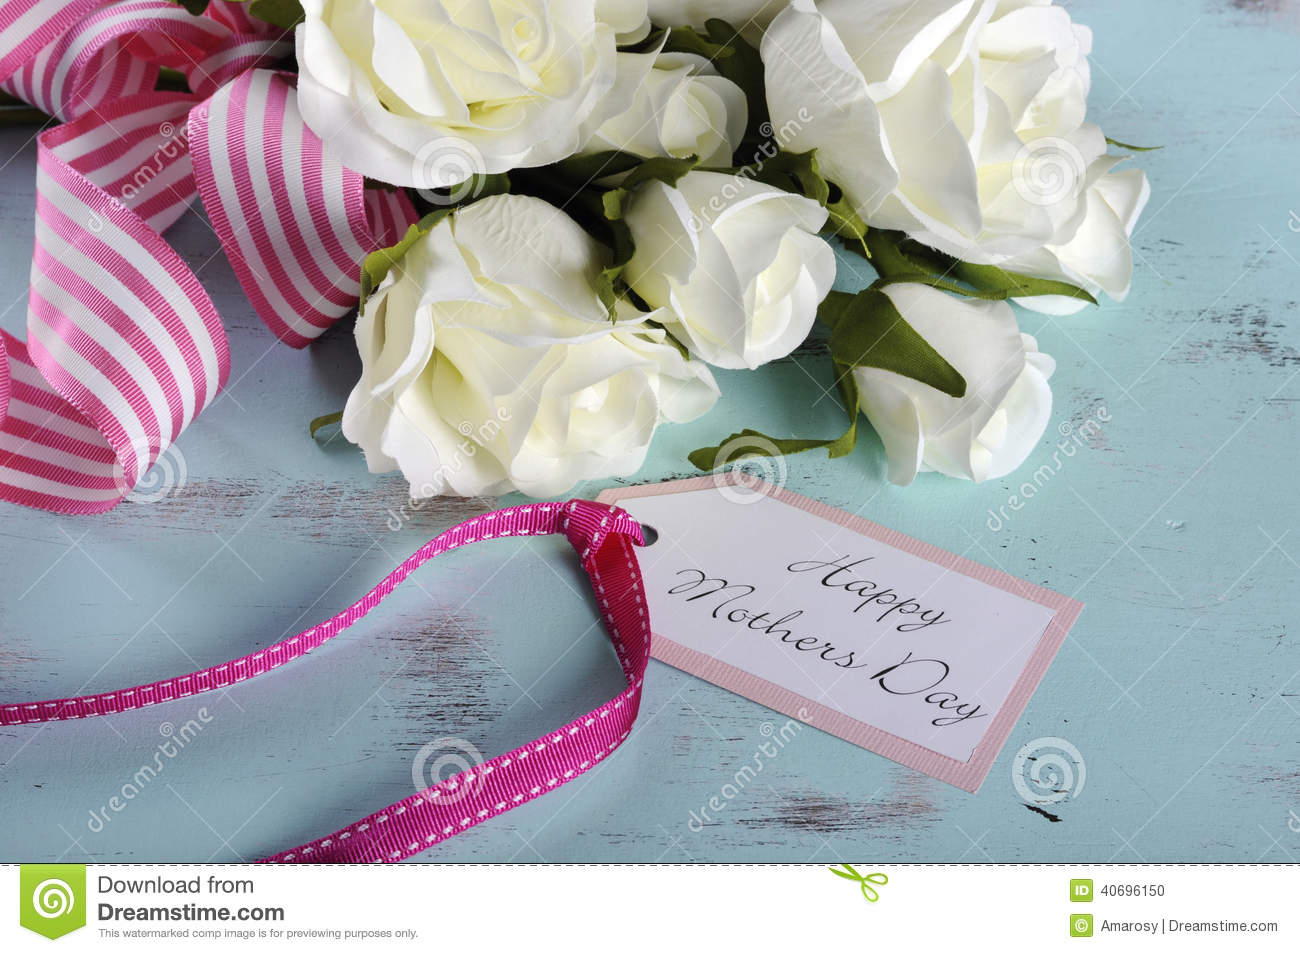 tag white rose bouquet - photo #34